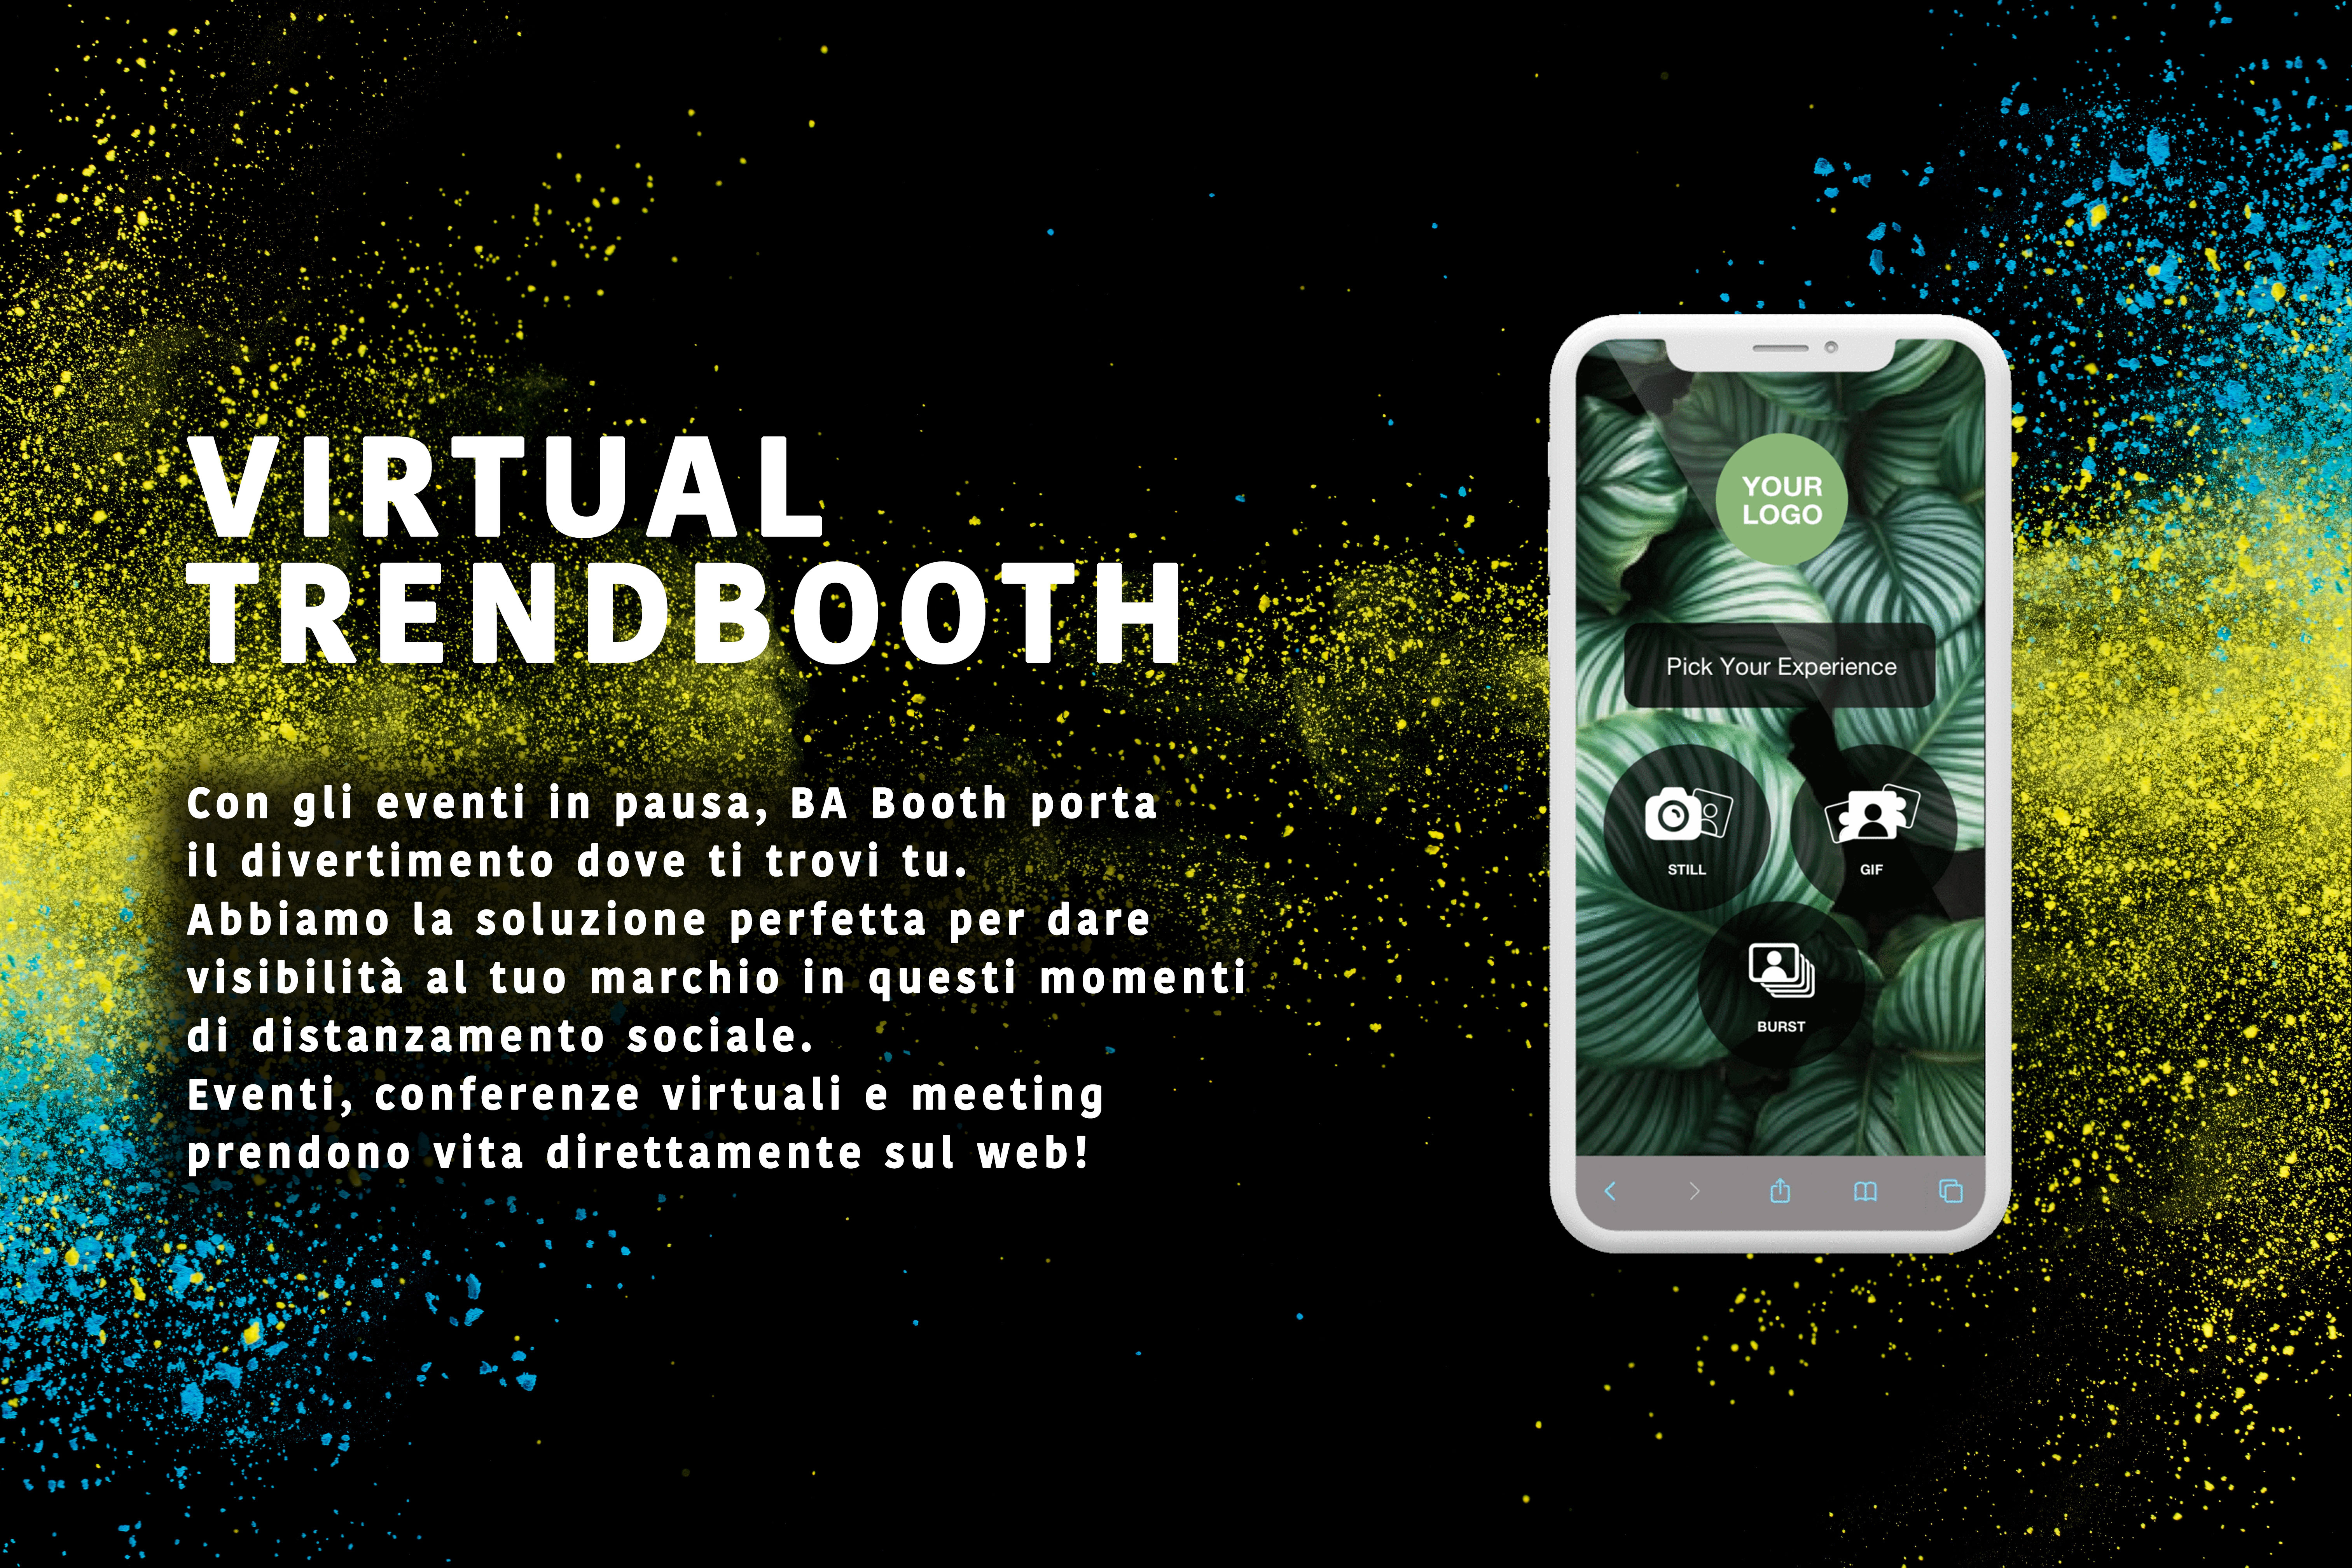 Virtual Trend booth